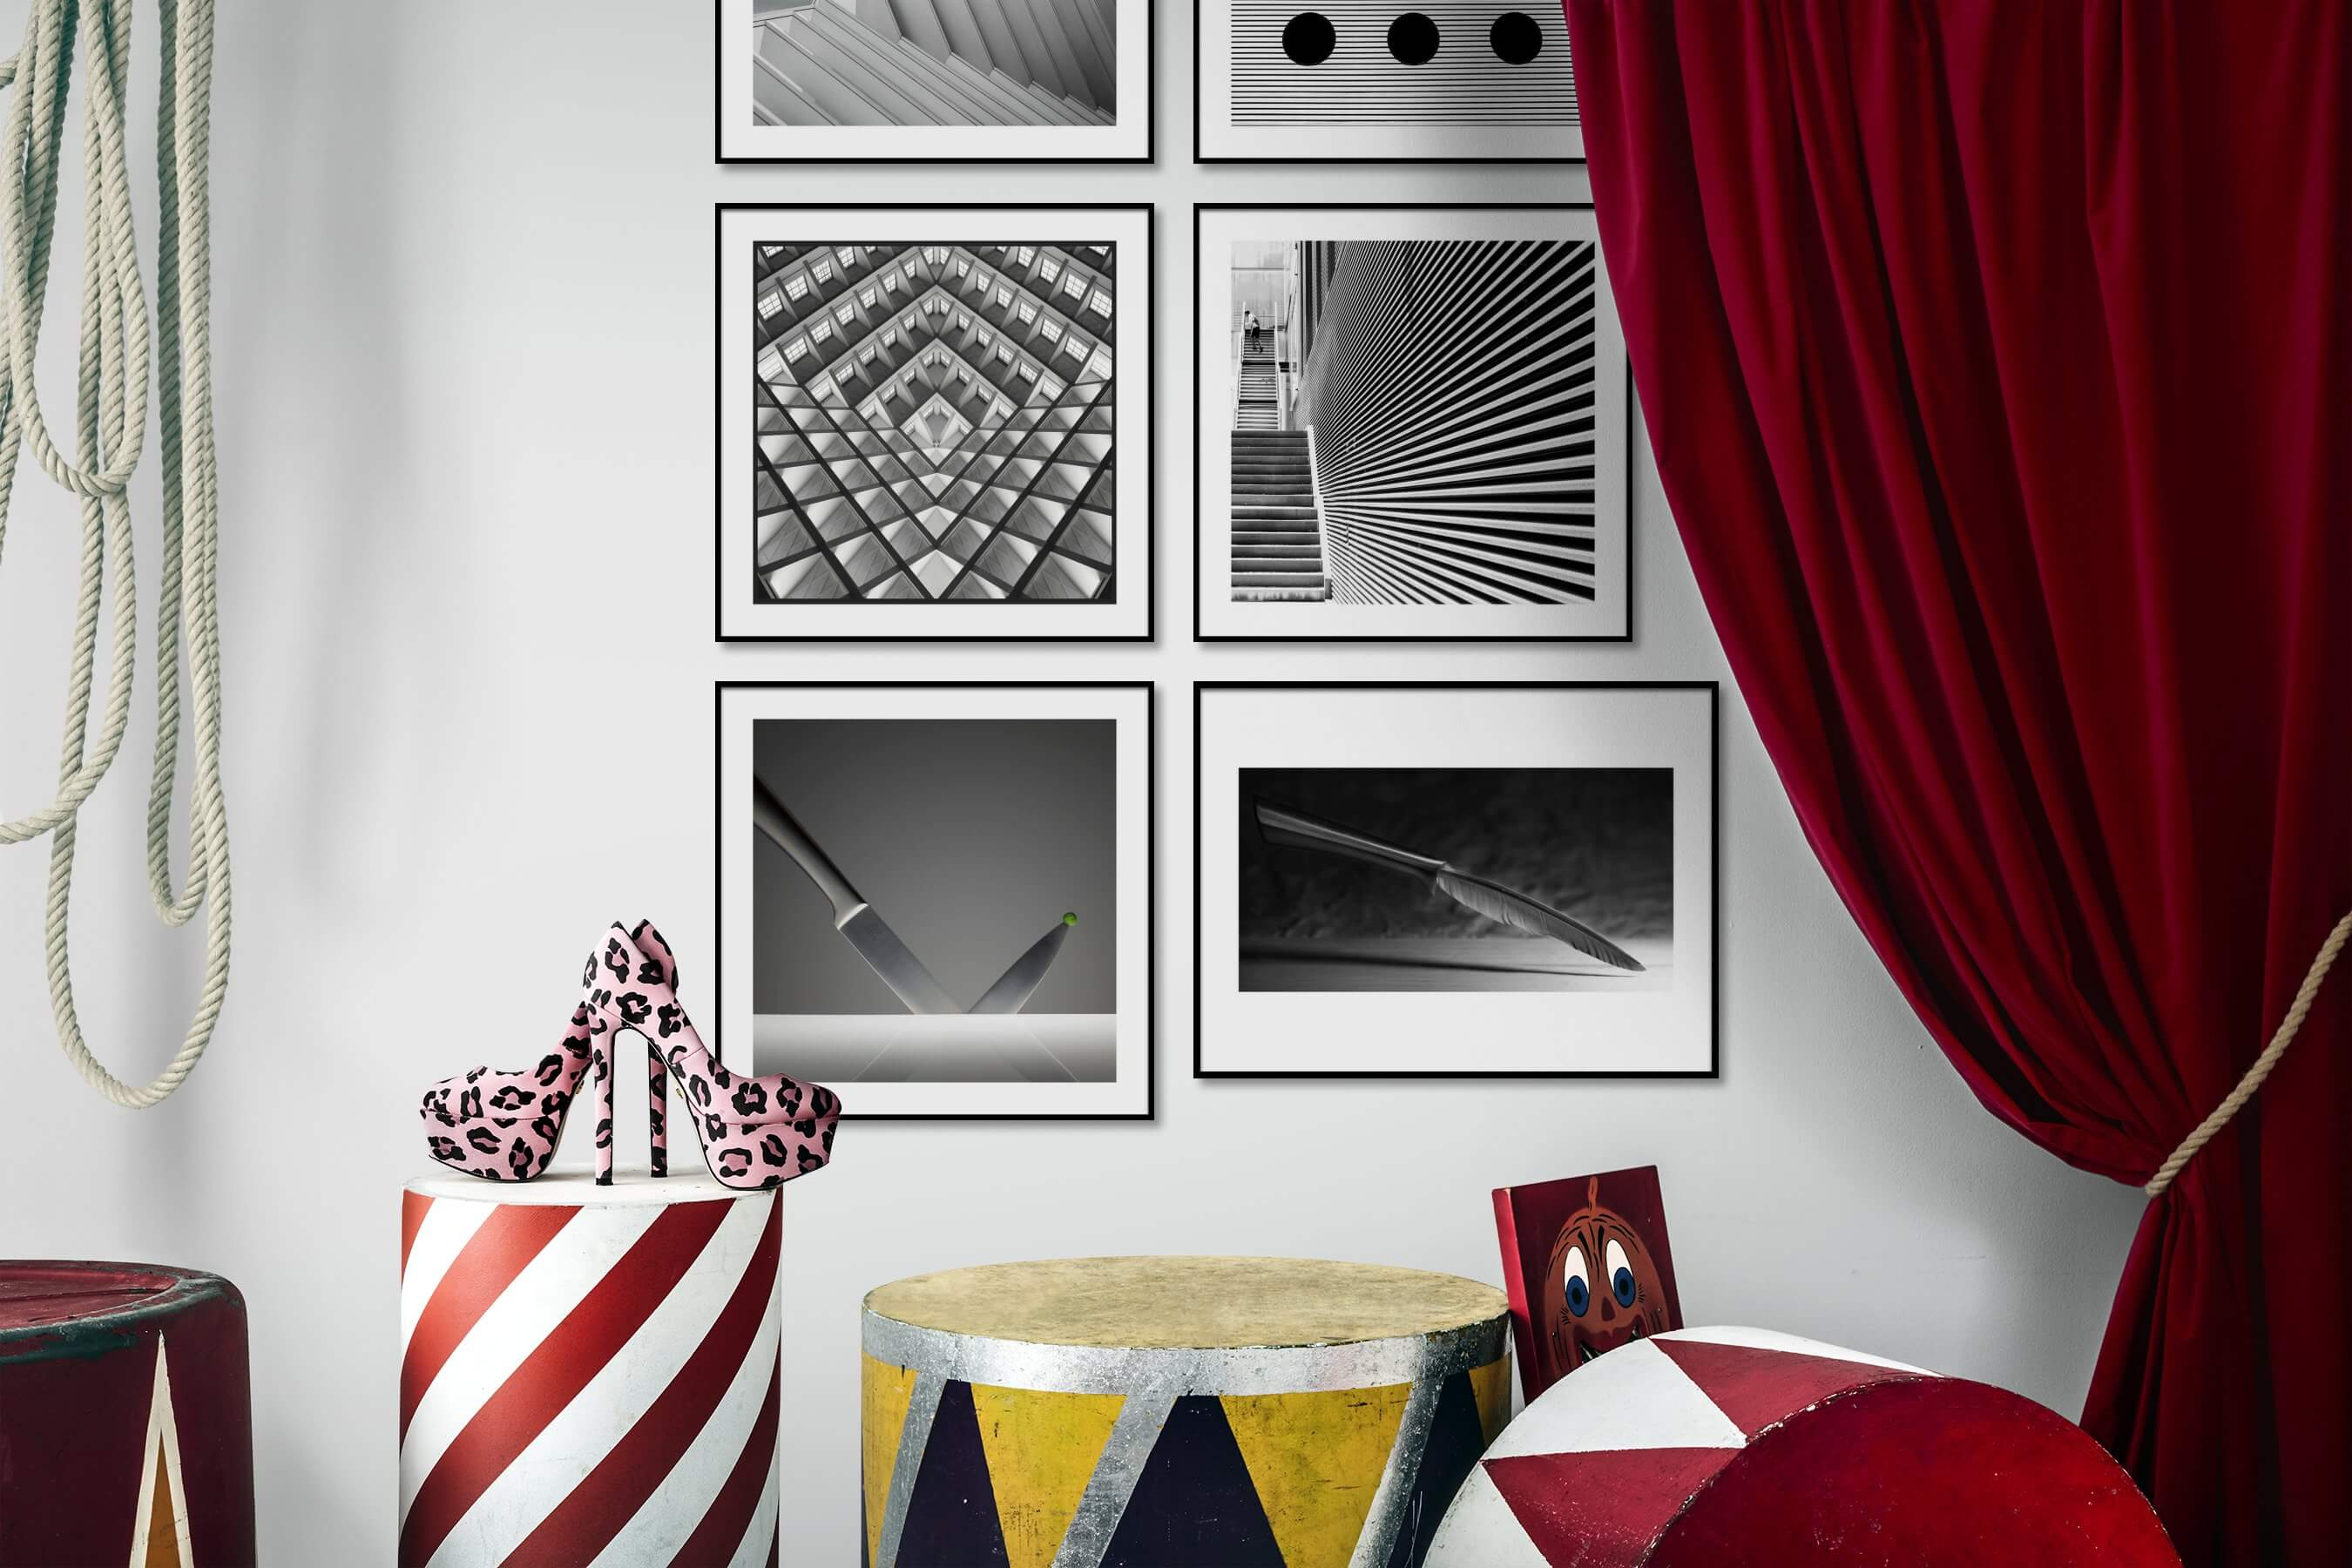 Gallery wall idea with six framed pictures arranged on a wall depicting For the Moderate, Black & White, For the Maximalist, City Life, and For the Minimalist